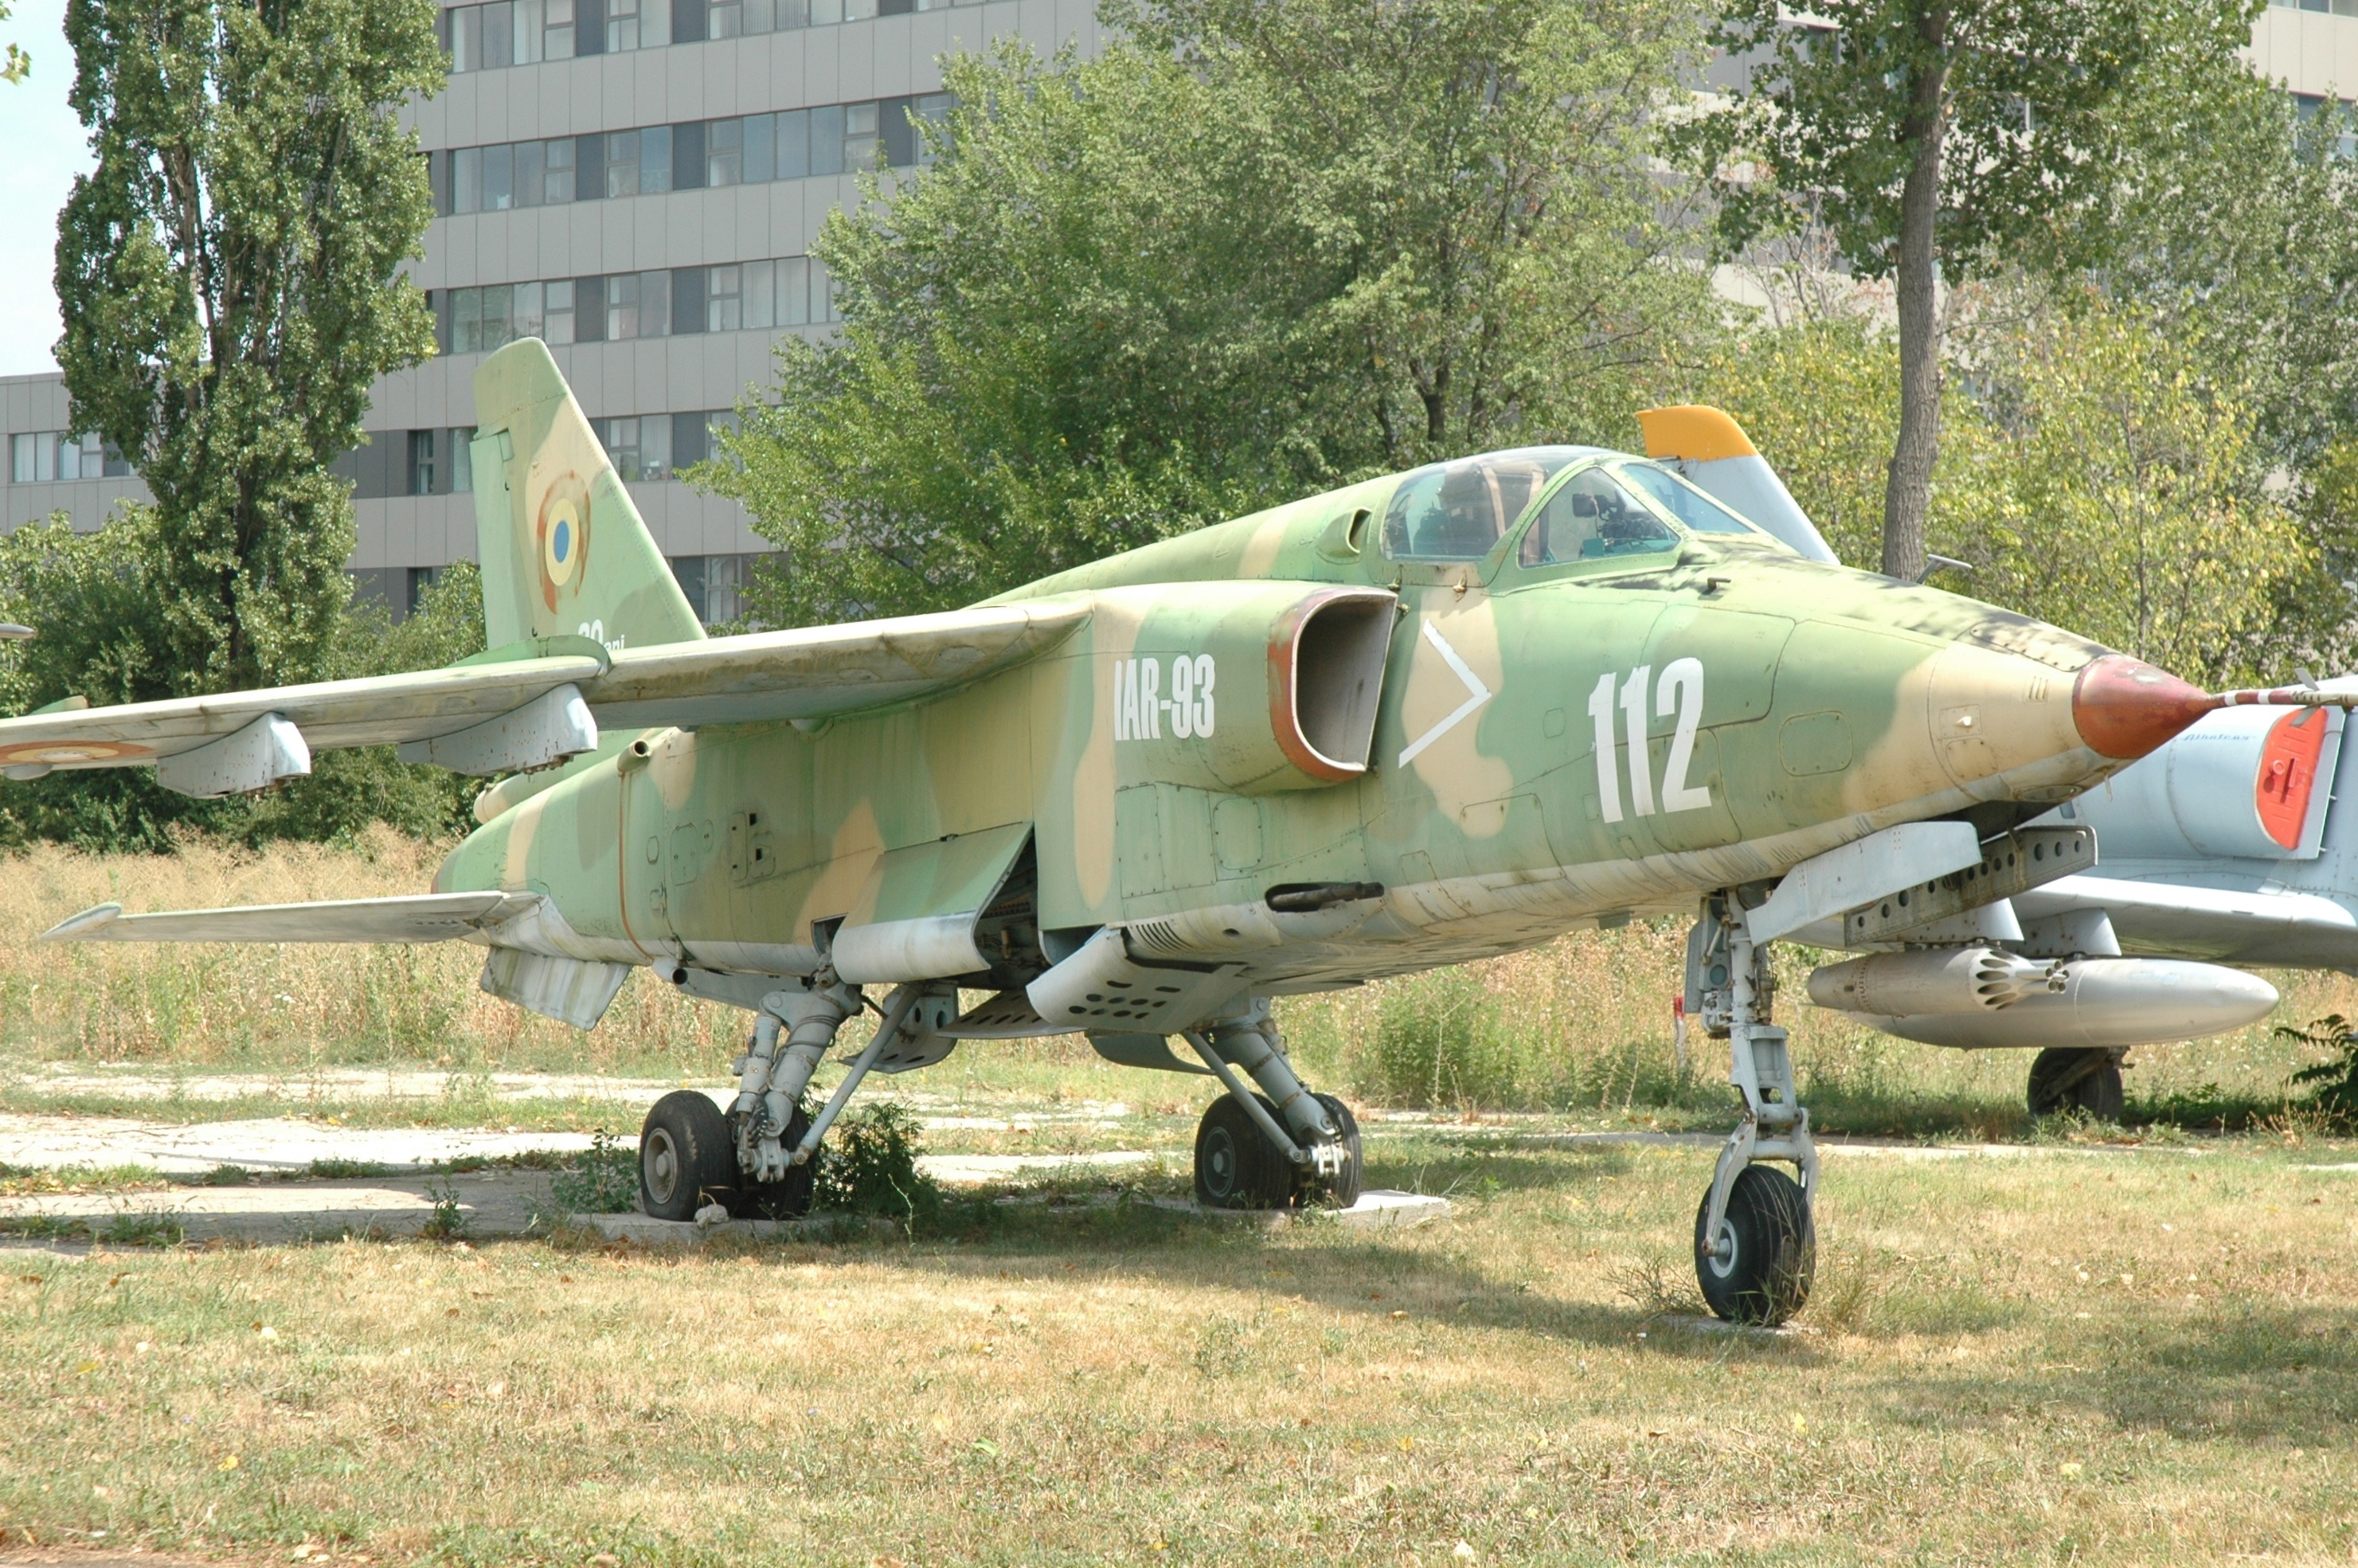 IAR_93_Bucharest_2012_01.jpg